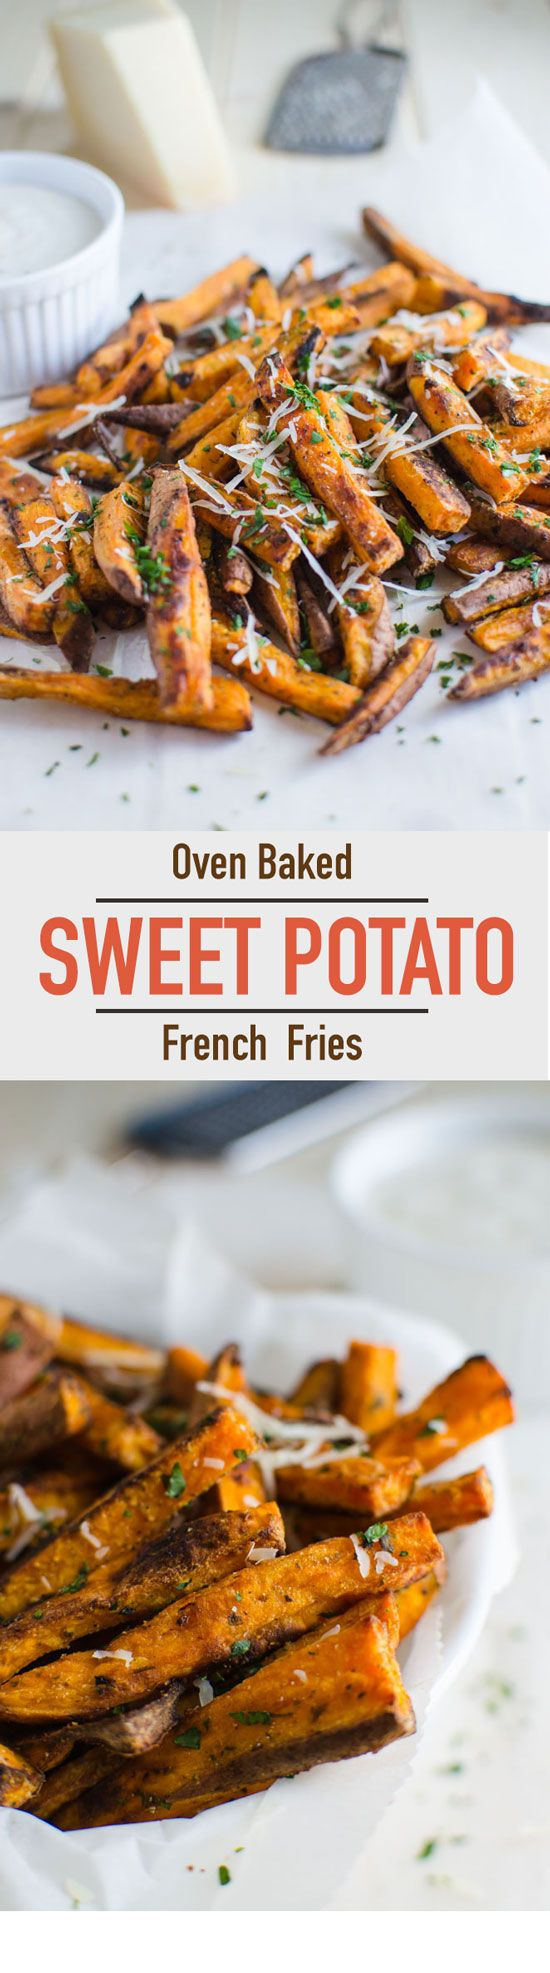 Healthy sweet potato fries that are baked in oven. Less in fat and loaded with complex carbohydrates, dietary fibers and vitamin A